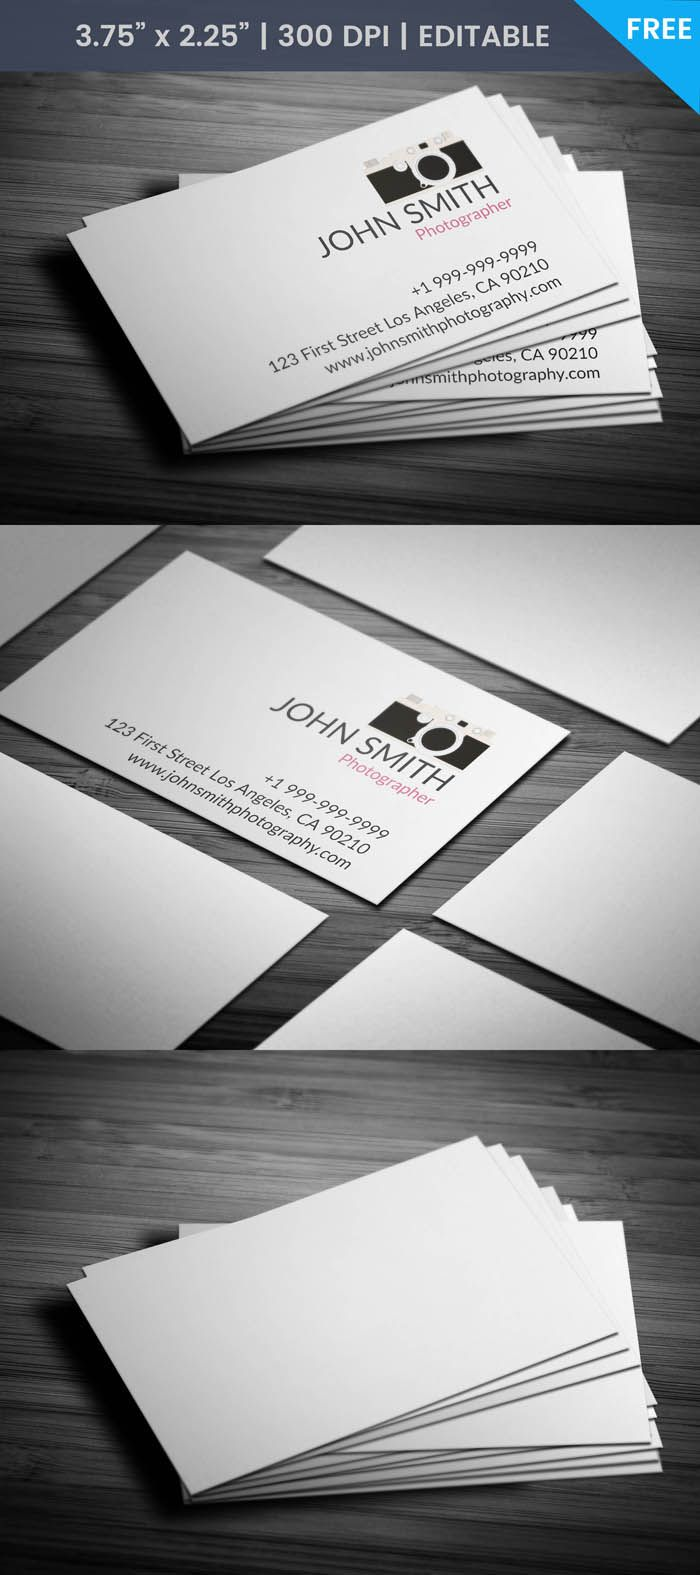 Free Free Creative Photography Business Card | Photography business ...